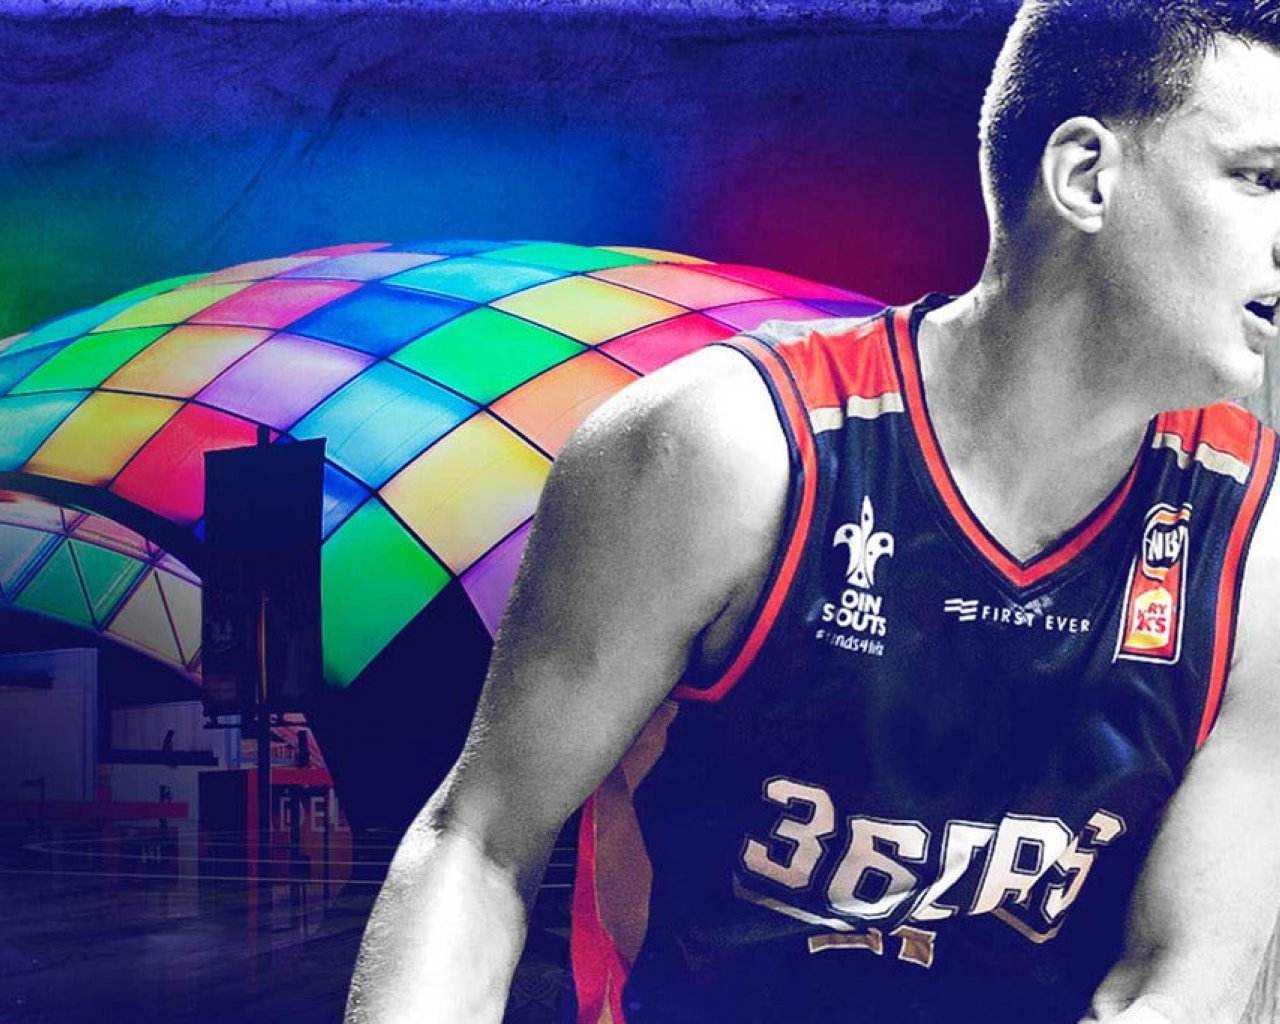 Adelaide 36ers tickets